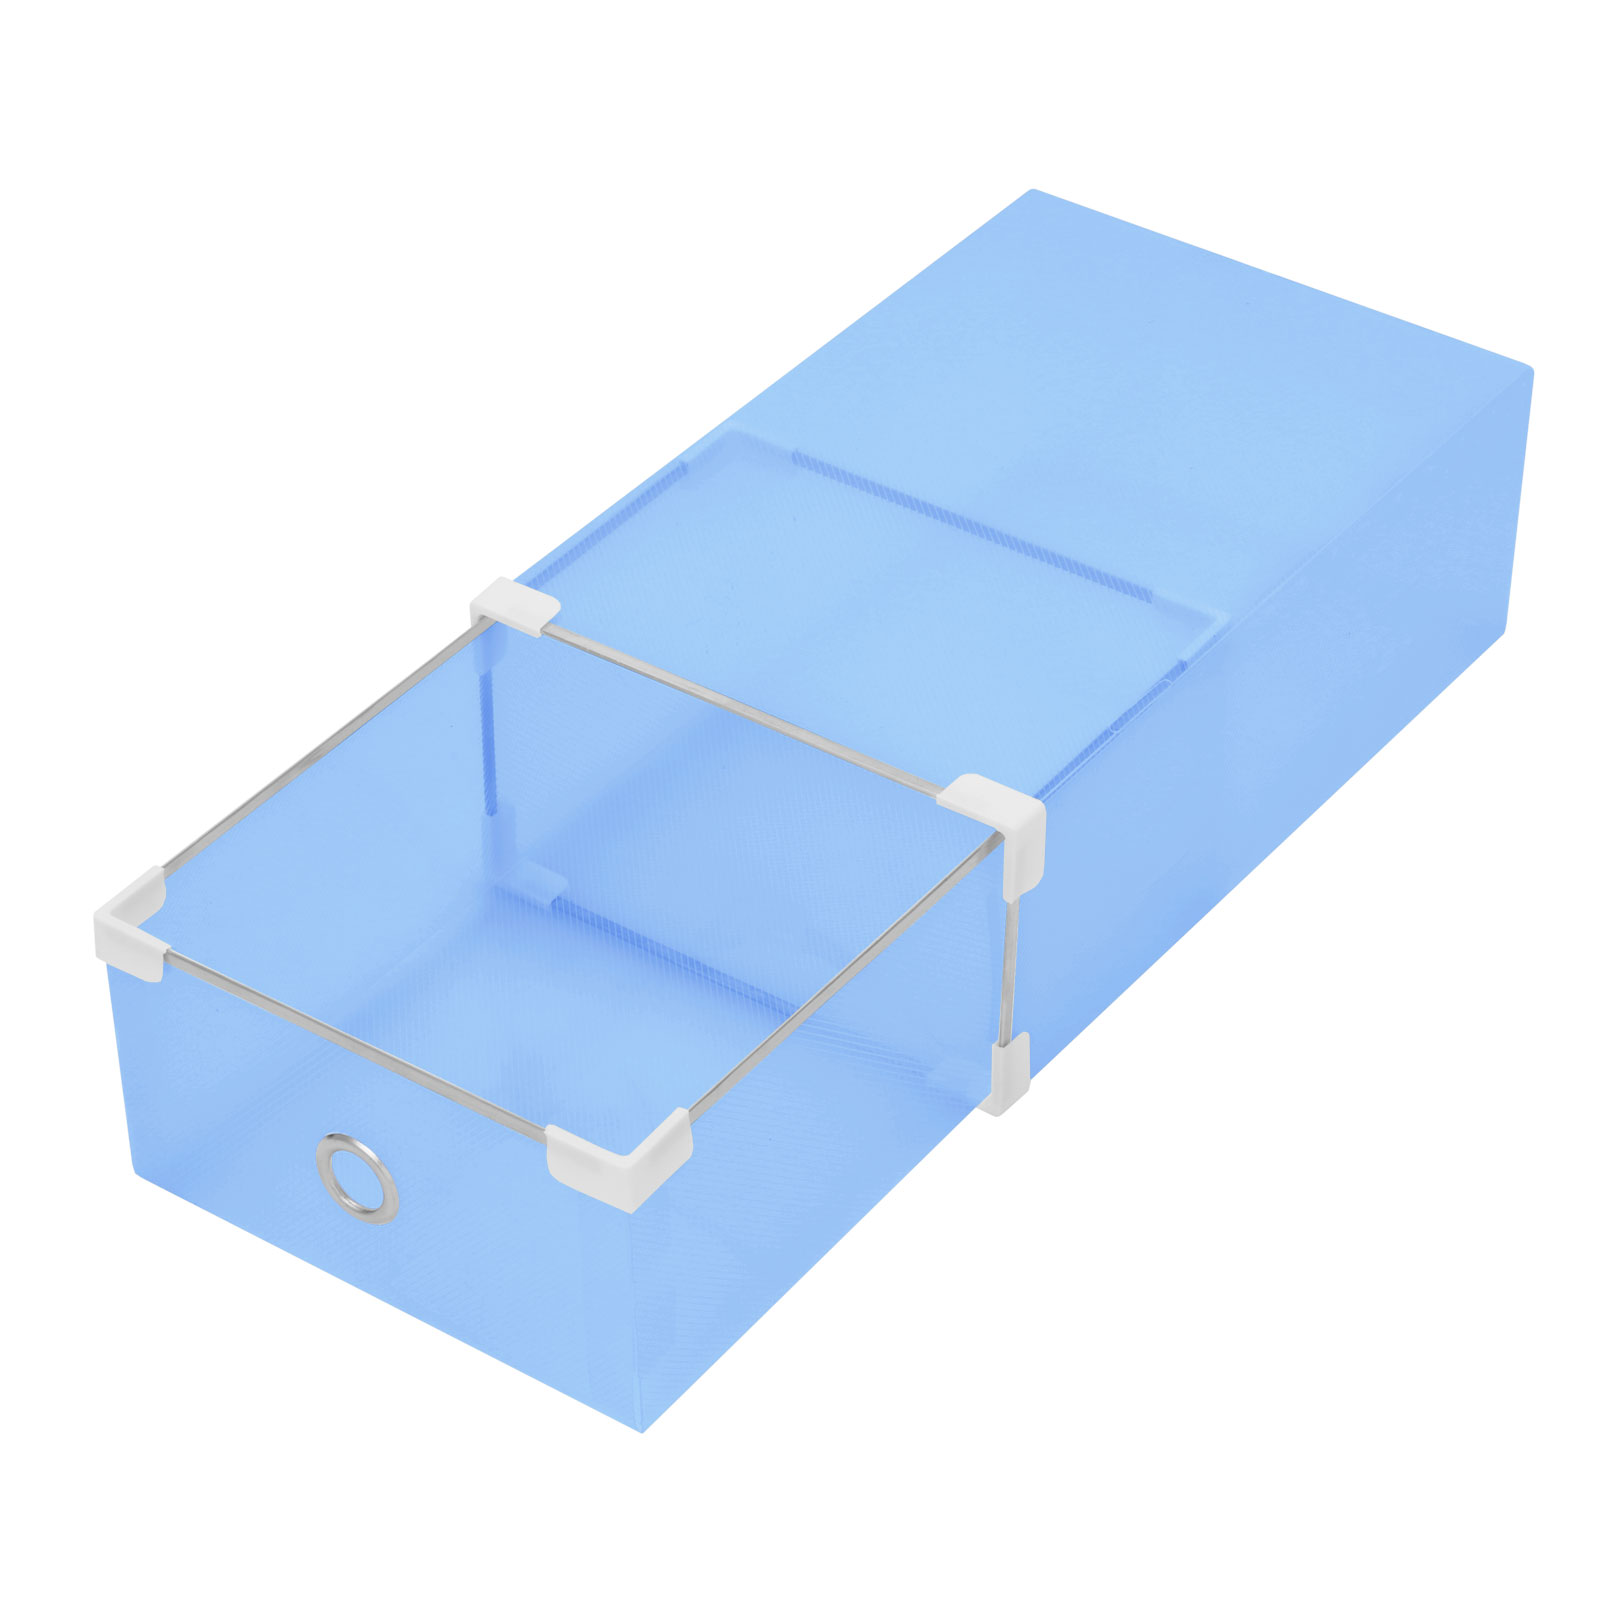 20 40 60pcs clear plastic shoe box drawer tray container wholesale lightweight ebay. Black Bedroom Furniture Sets. Home Design Ideas